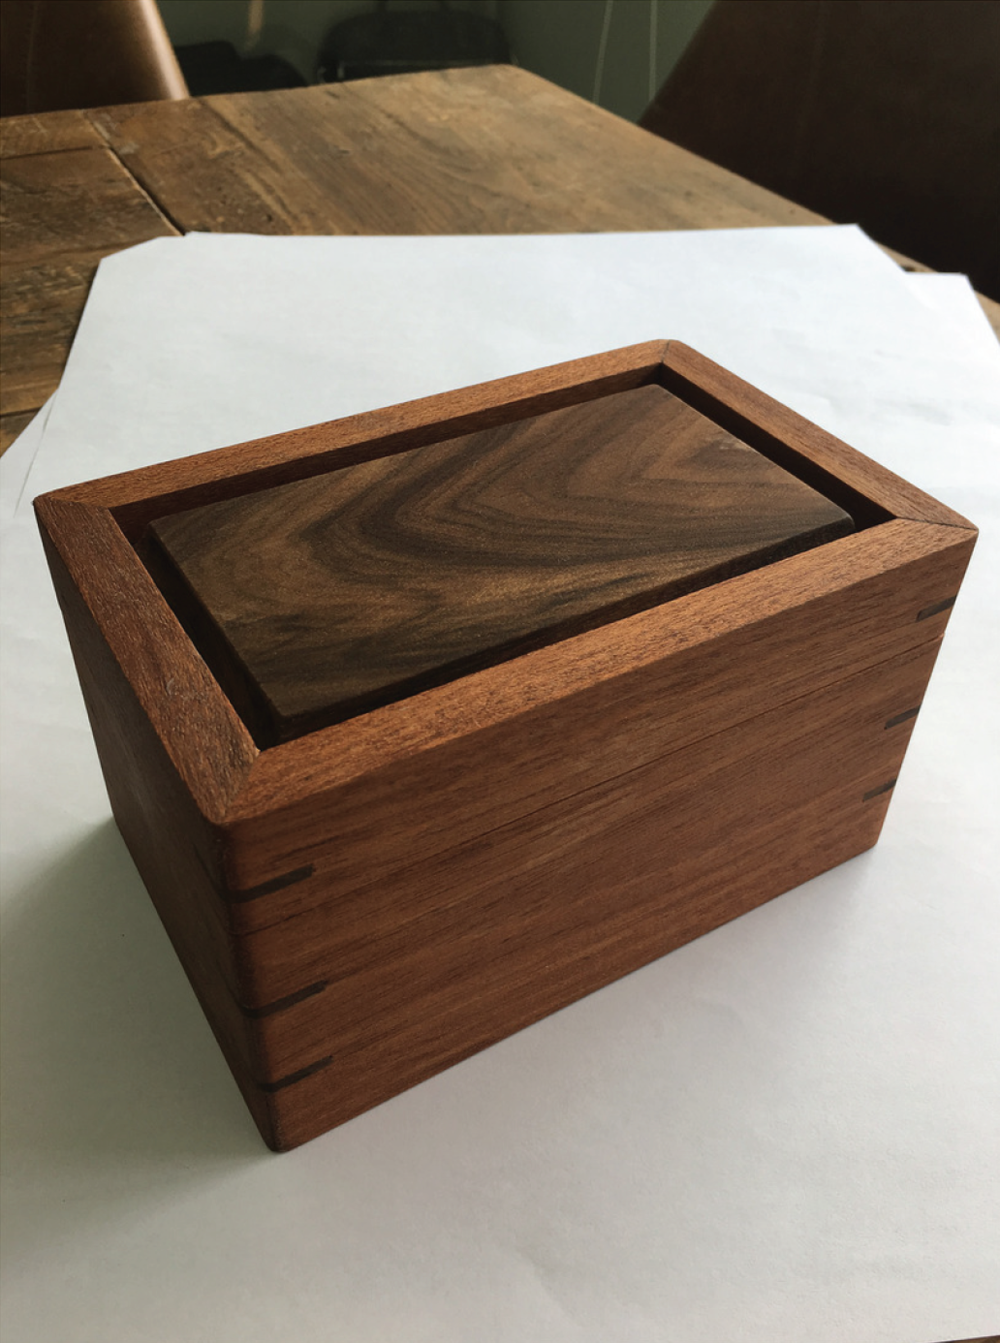 9. To complete the box, the wood was stained with Danish oil and later coated with Polyurethane.